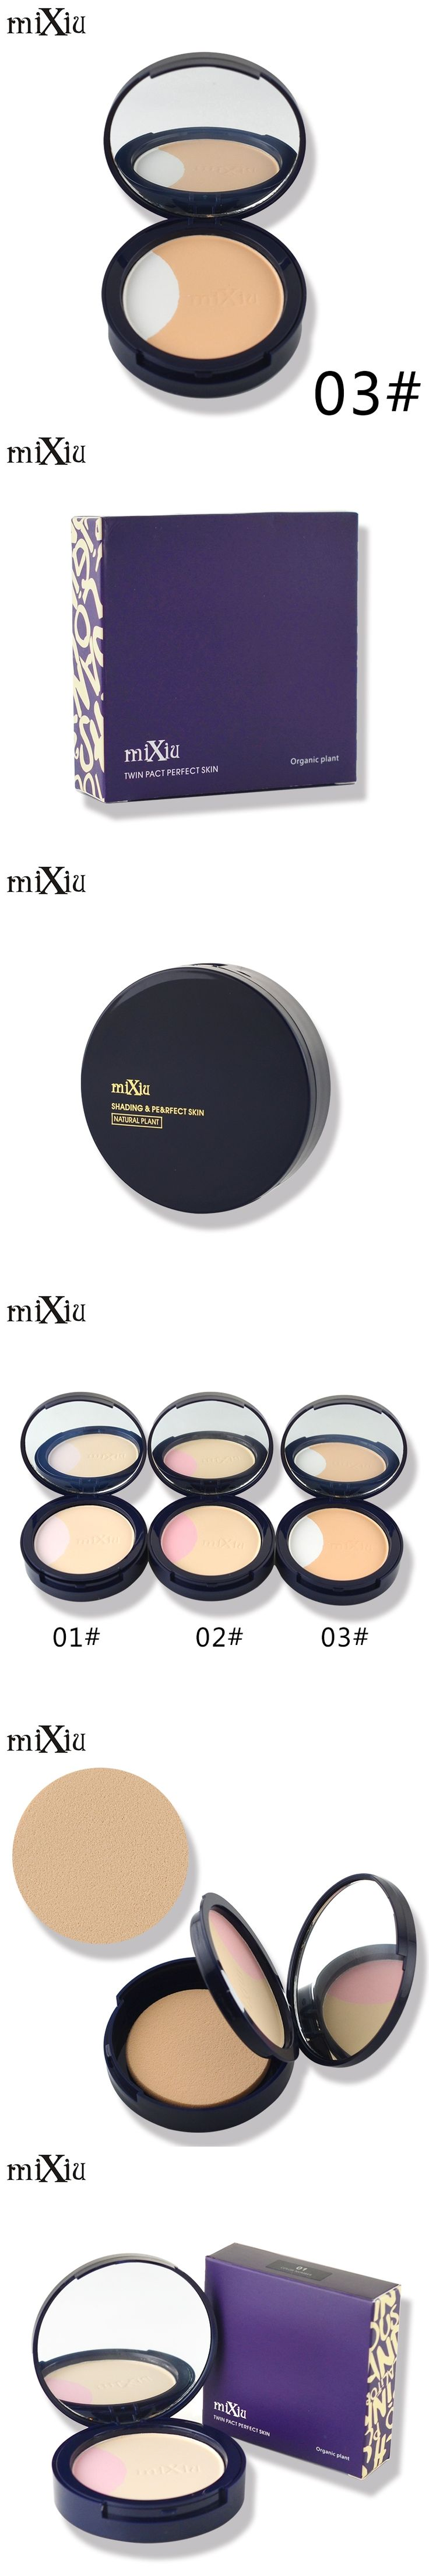 Natural Base Face Pressed Powder Makeup 3Colors Concealer Brighten Contour Camouflage Mixiu Brand Bare Mineral Powder Foundation